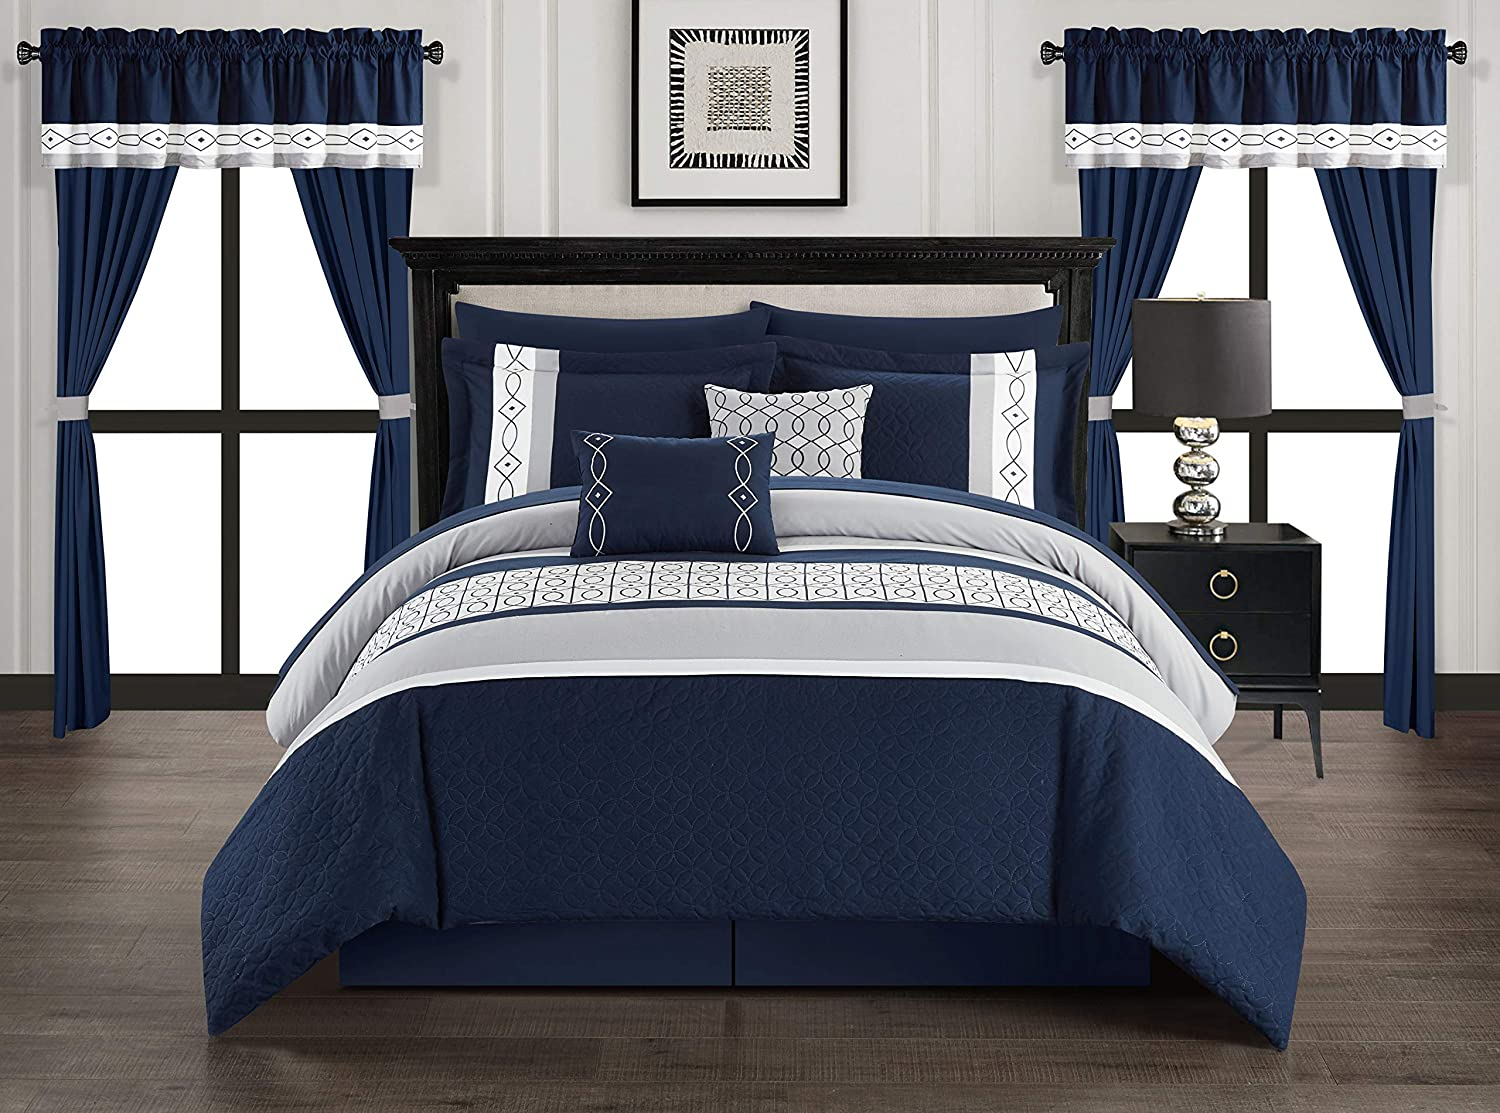 Chic Home Katrin 20 Piece Comforter Color Block Geometric Embroidered Bag Bedding-Sheet Set Pillowcases Window Treatments Decorative Pillows Shams Included, Queen, Navy